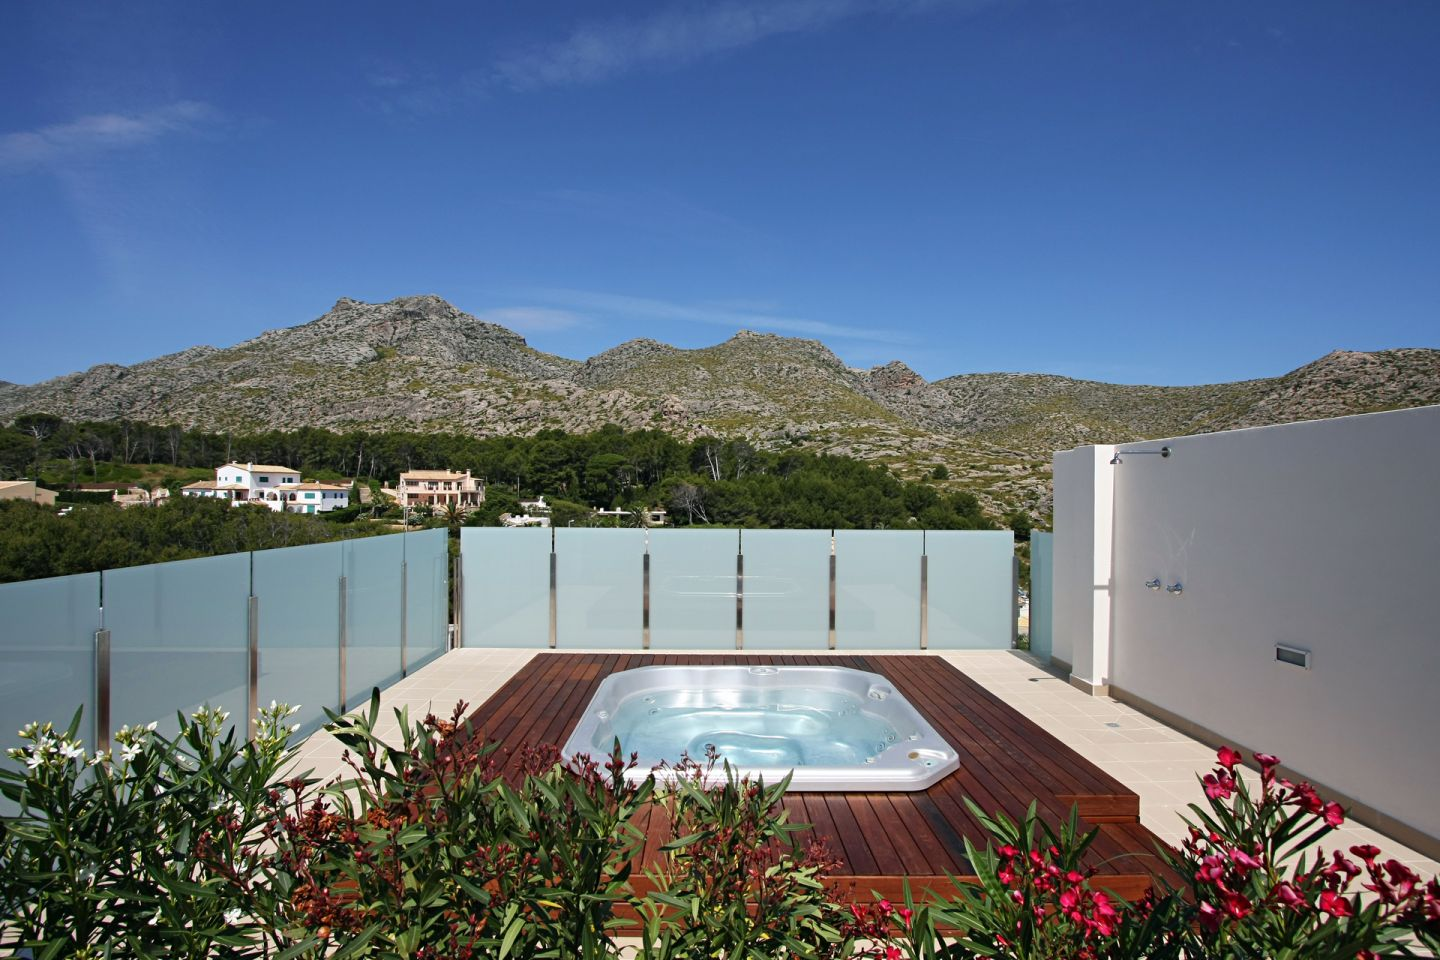 2 Bed Building for sale in Cala San Vicente 1